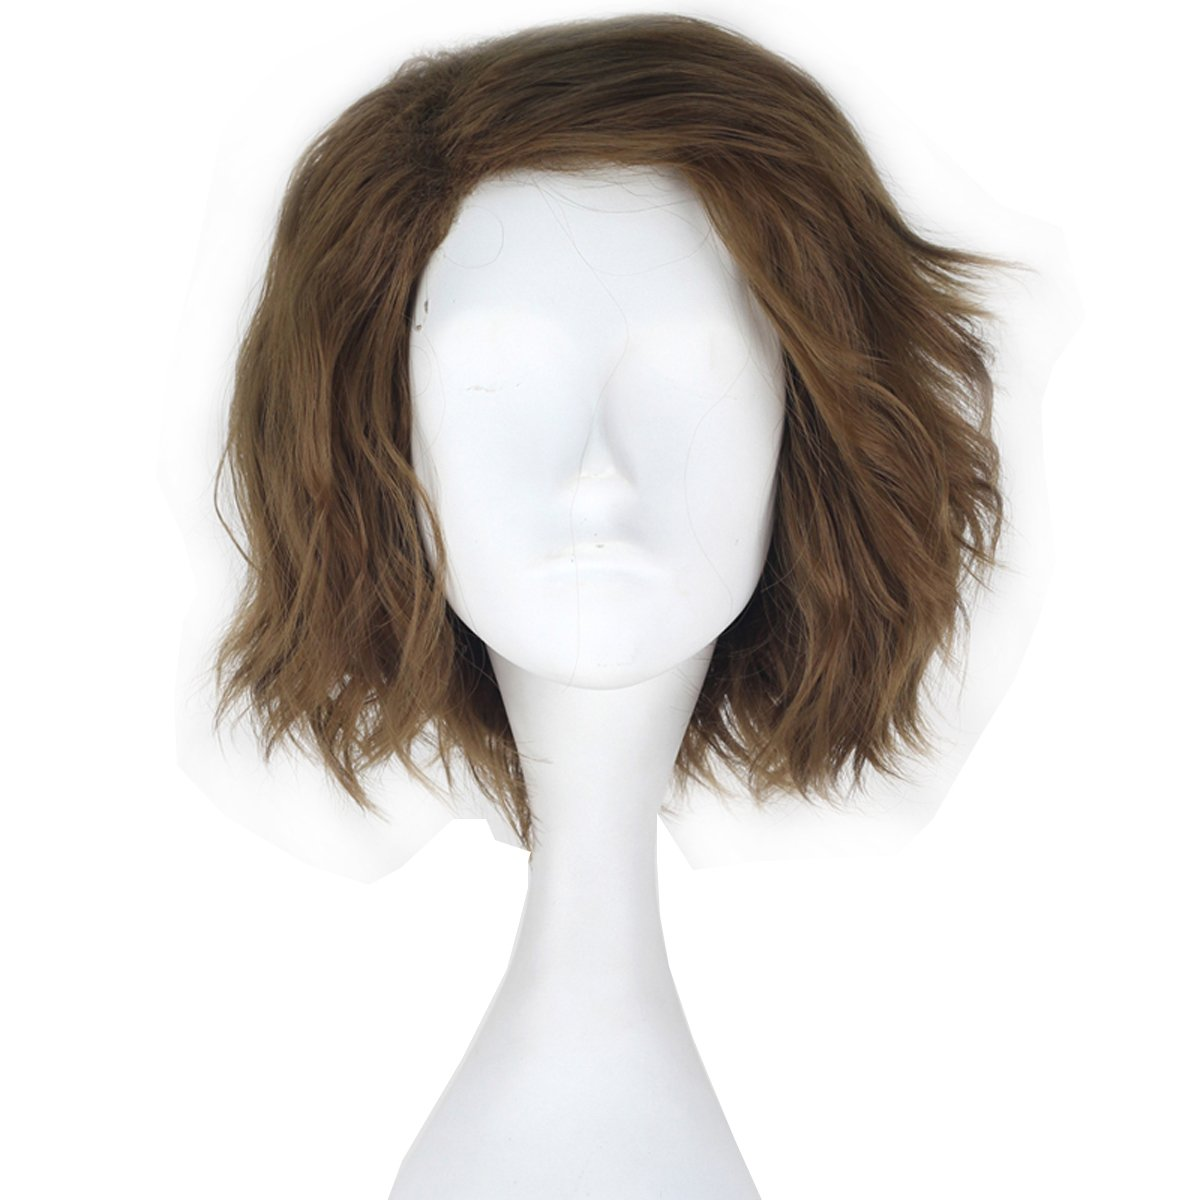 Miss U Hair Short Wavy Men Fashion Flax Party Cosplay Max 66% OFF Color Max 83% OFF